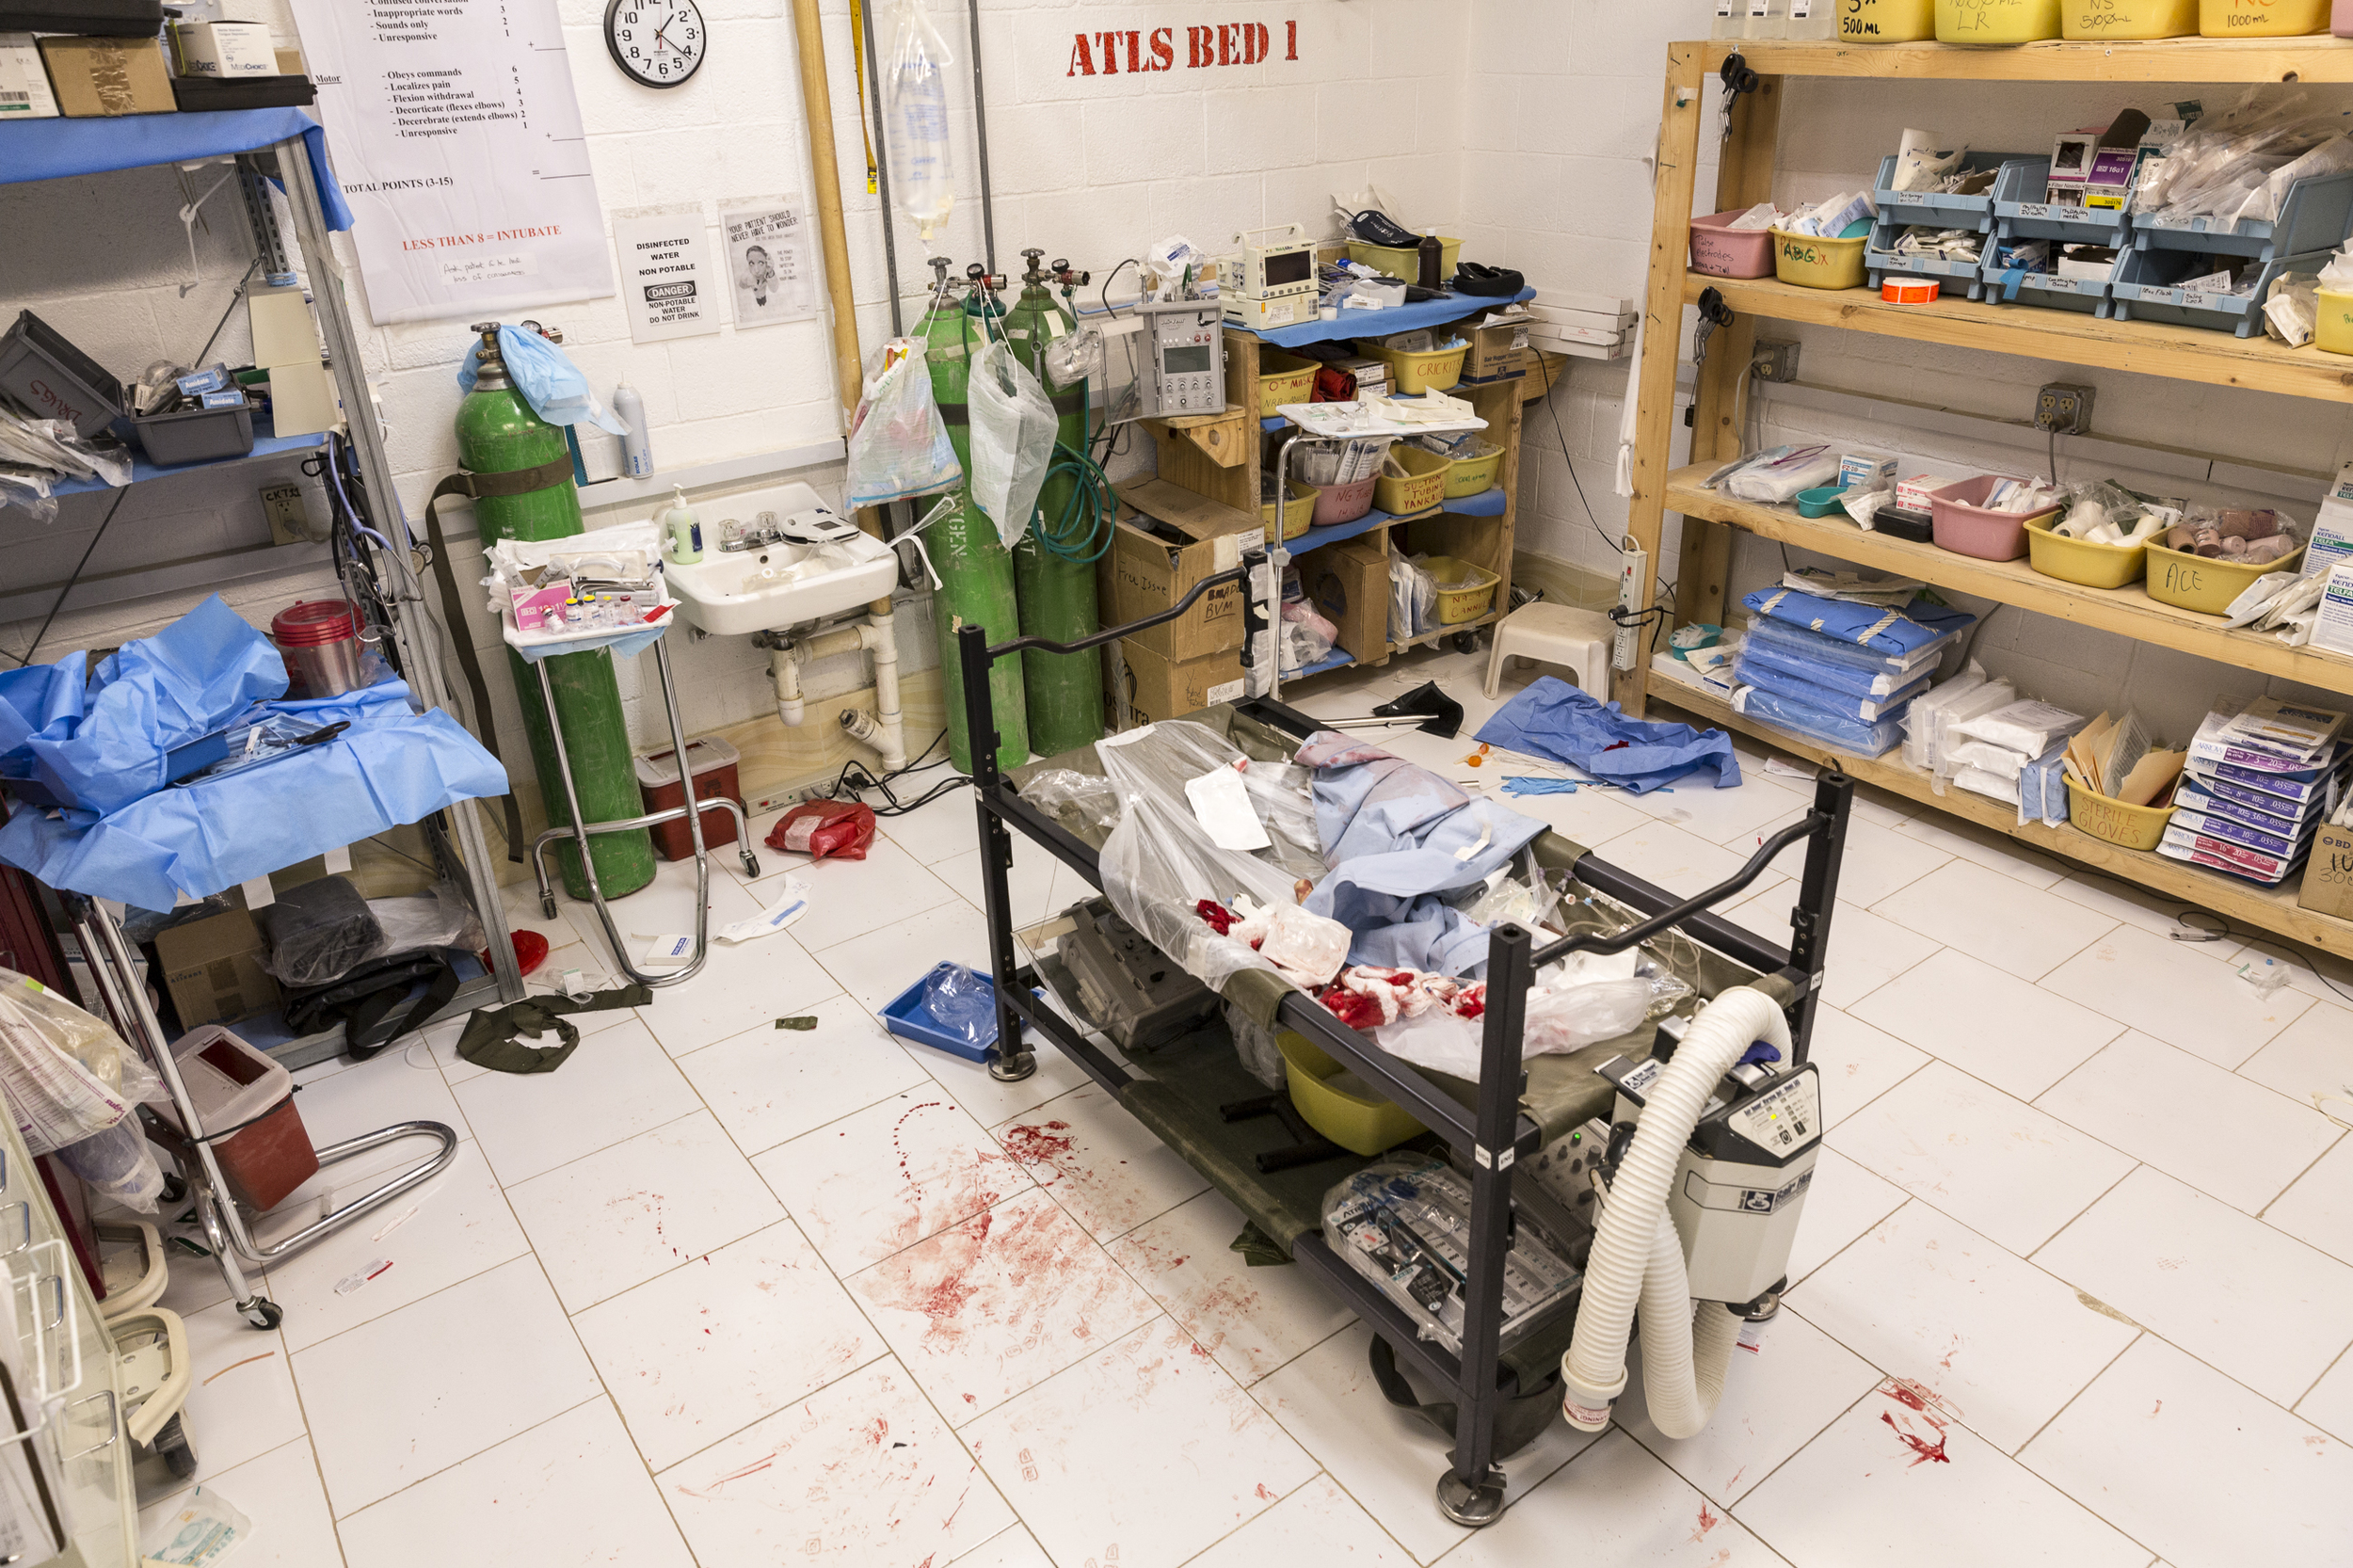 A typical sight at the Base Aid Station following casualty treatment at Forward Operating Base Farah, Afghanistan.